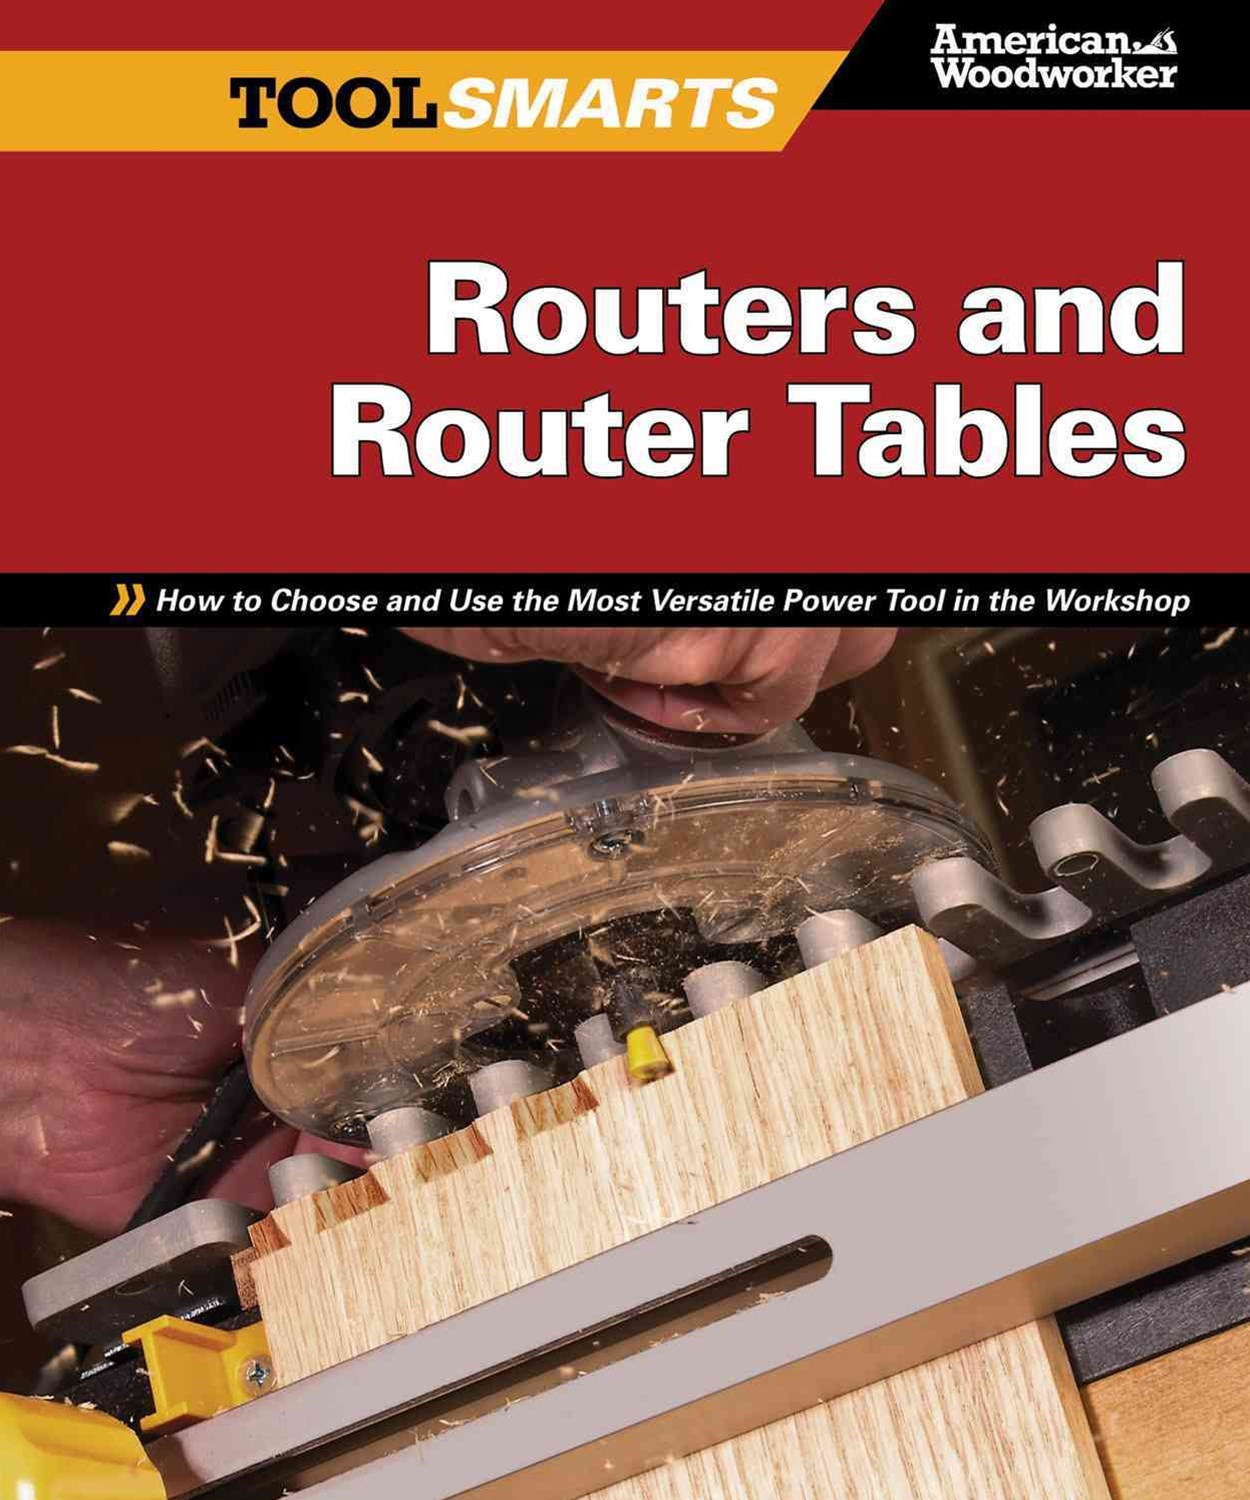 Routers and Router Tables (AW)